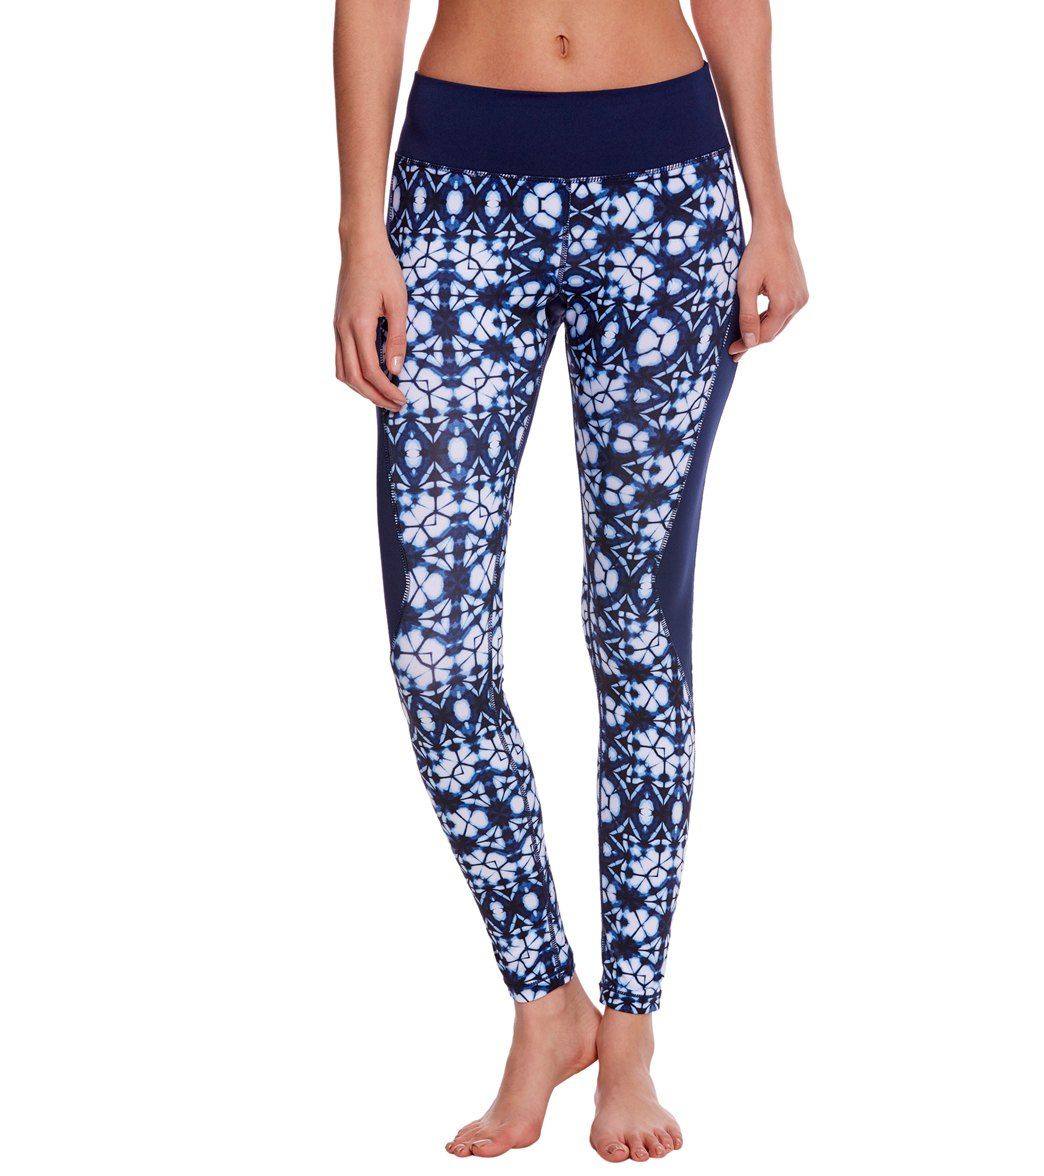 bc3aed47ff8c7 Pink Lotus Movement Shibori Printed Yoga Leggings at YogaOutlet.com ...